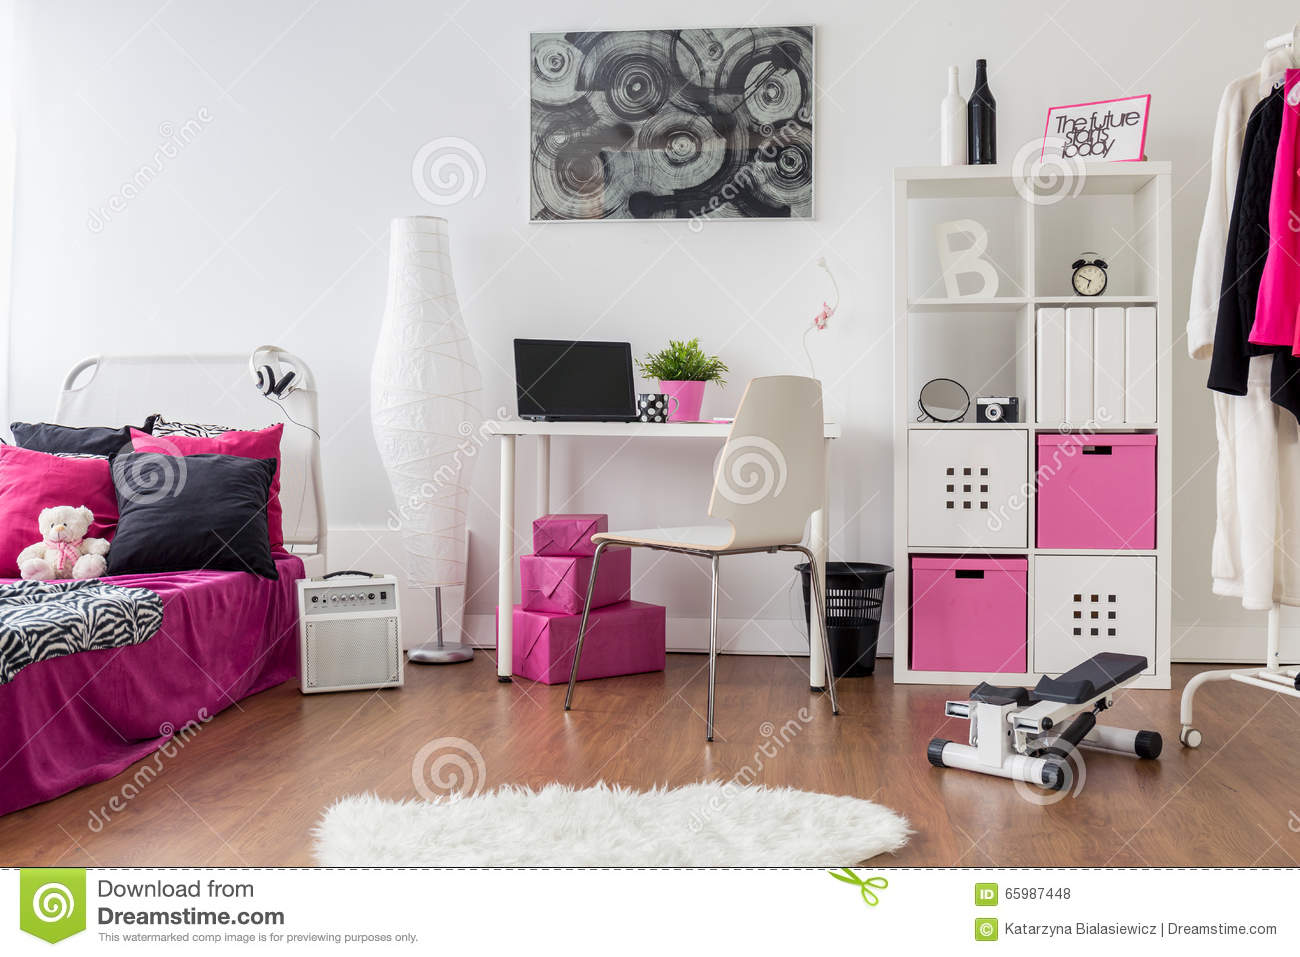 Place For Sleep, Study And Workout Stock Photo - Image of home, room ...